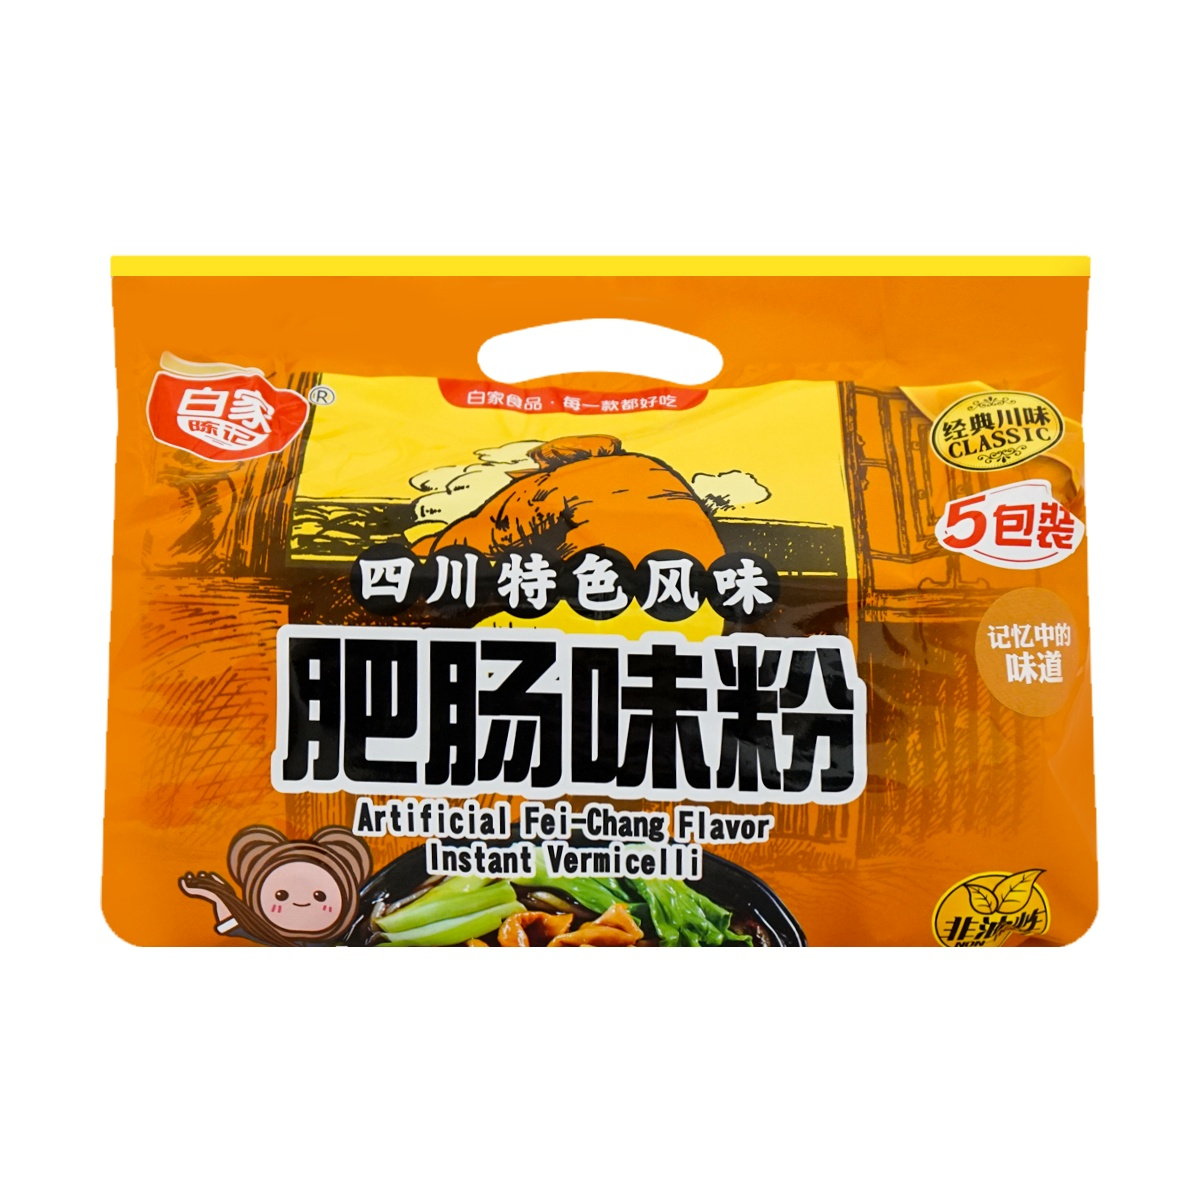 BaiJia Artifical Fei-Chang Flavor 白家 肥肠味粉 1/5pkt